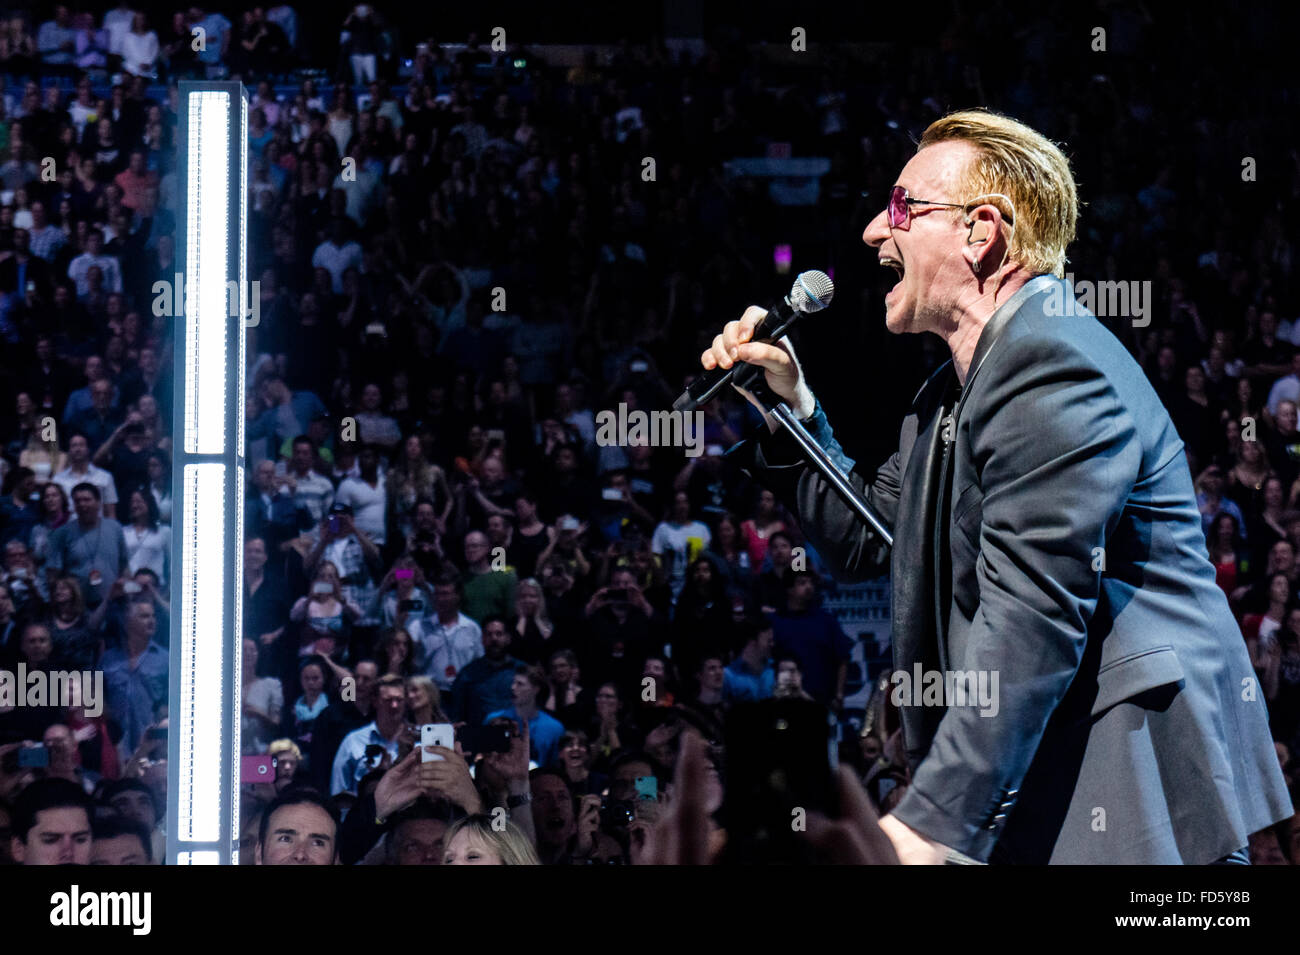 Bono of U2 at Rogers Arena in Vancouver, British Columbia, Canada on May 14th 2015 - Stock Image